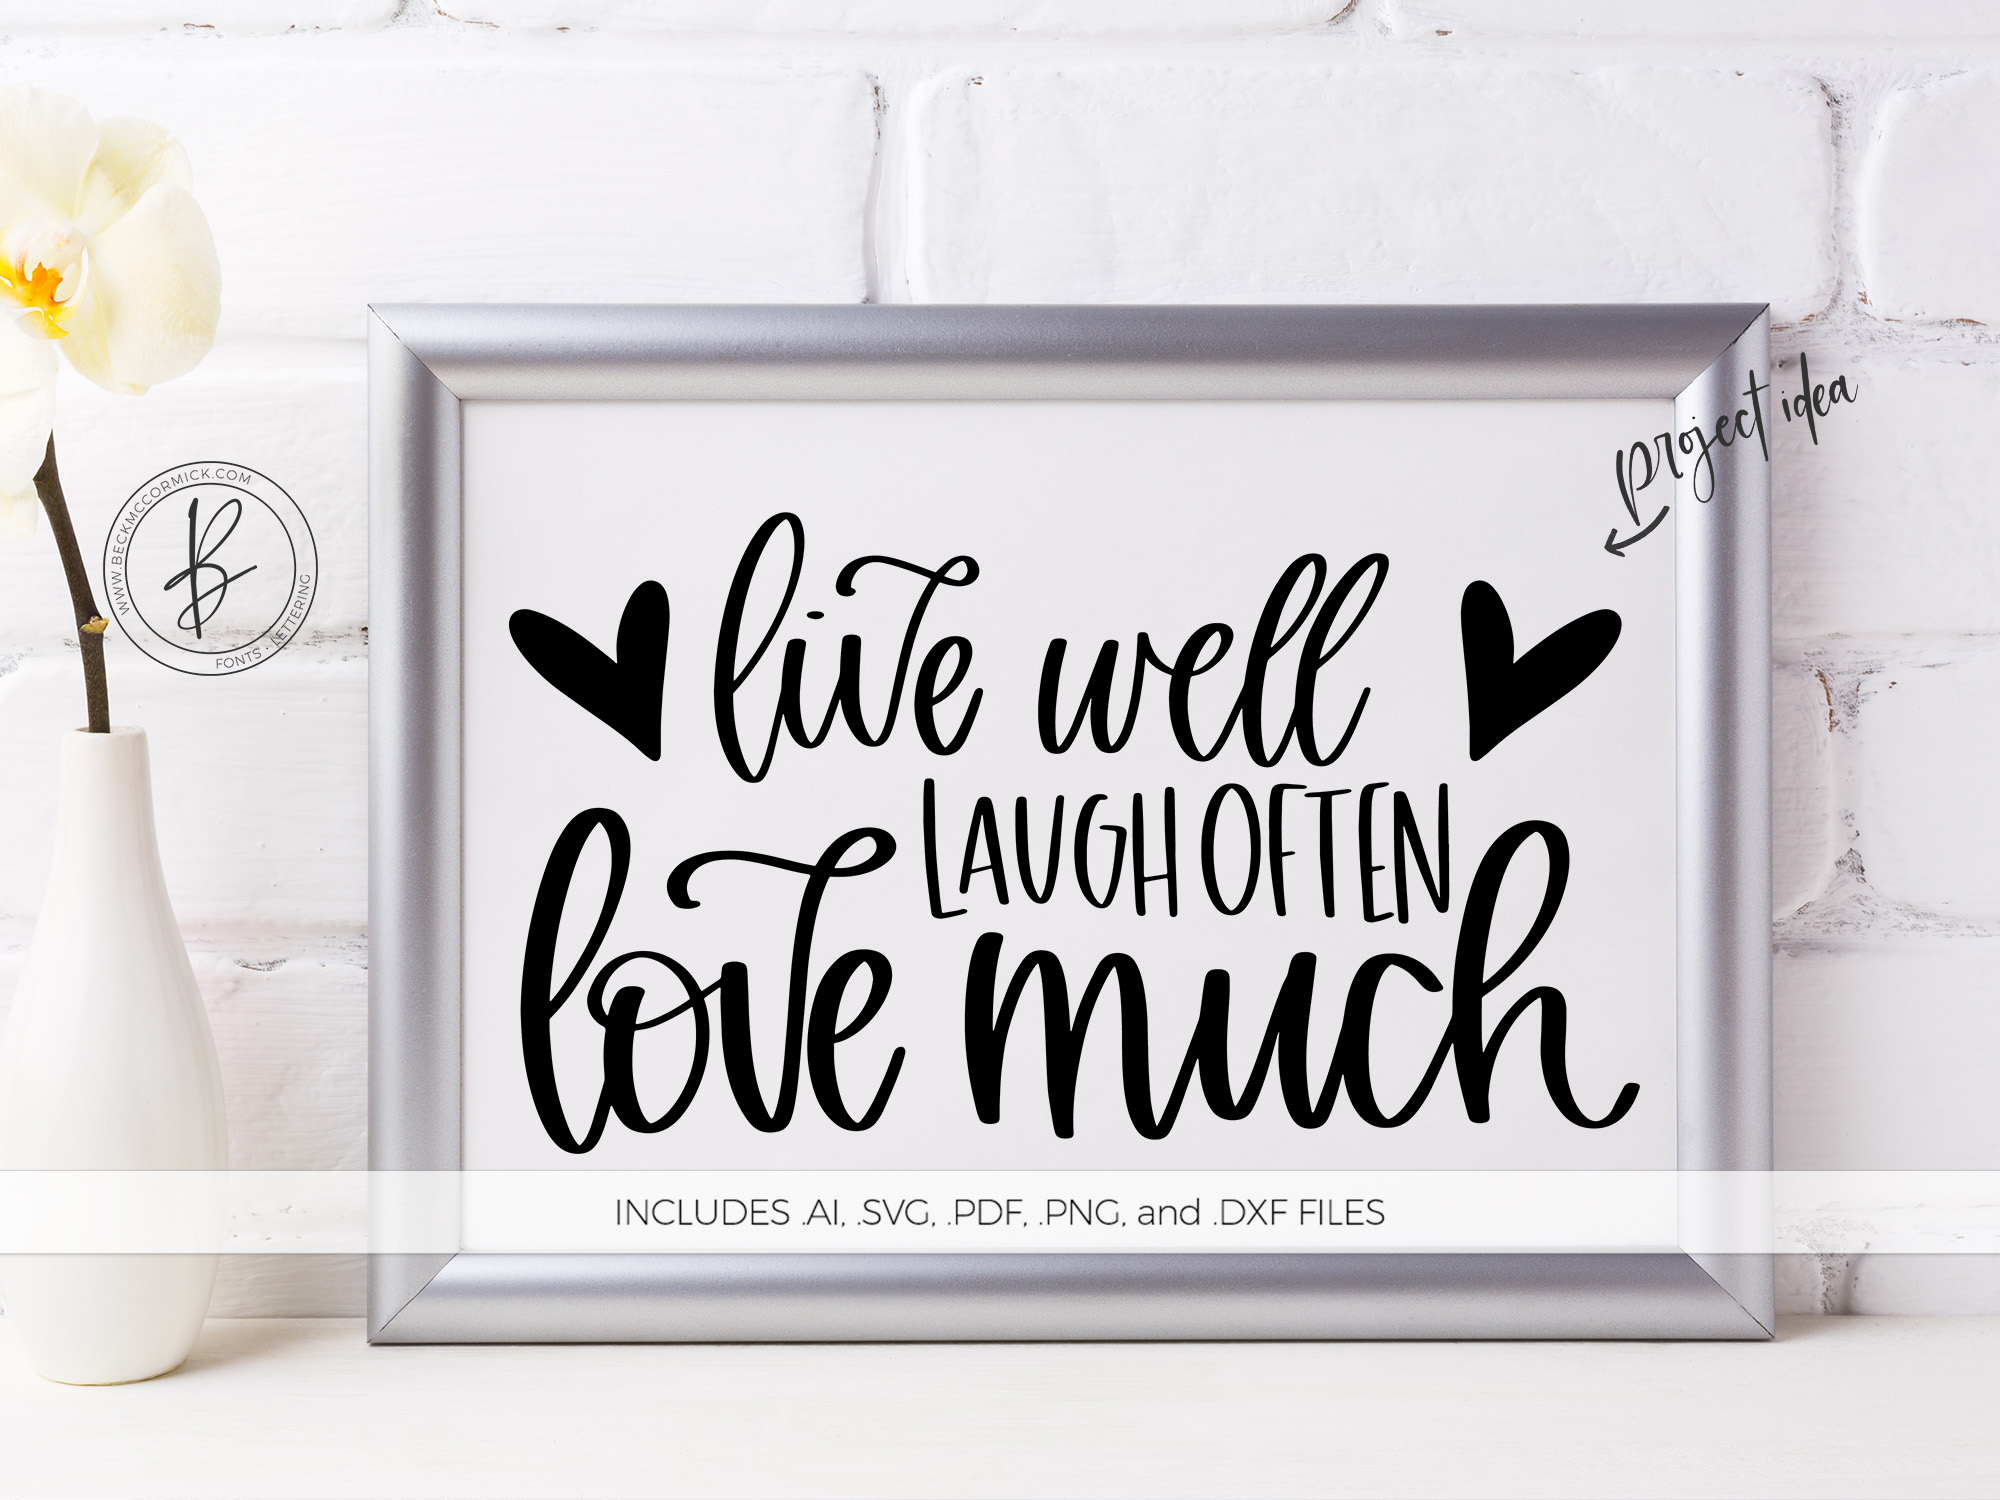 Download Free Live Well Laugh Often Love Much Graphic By Beckmccormick for Cricut Explore, Silhouette and other cutting machines.